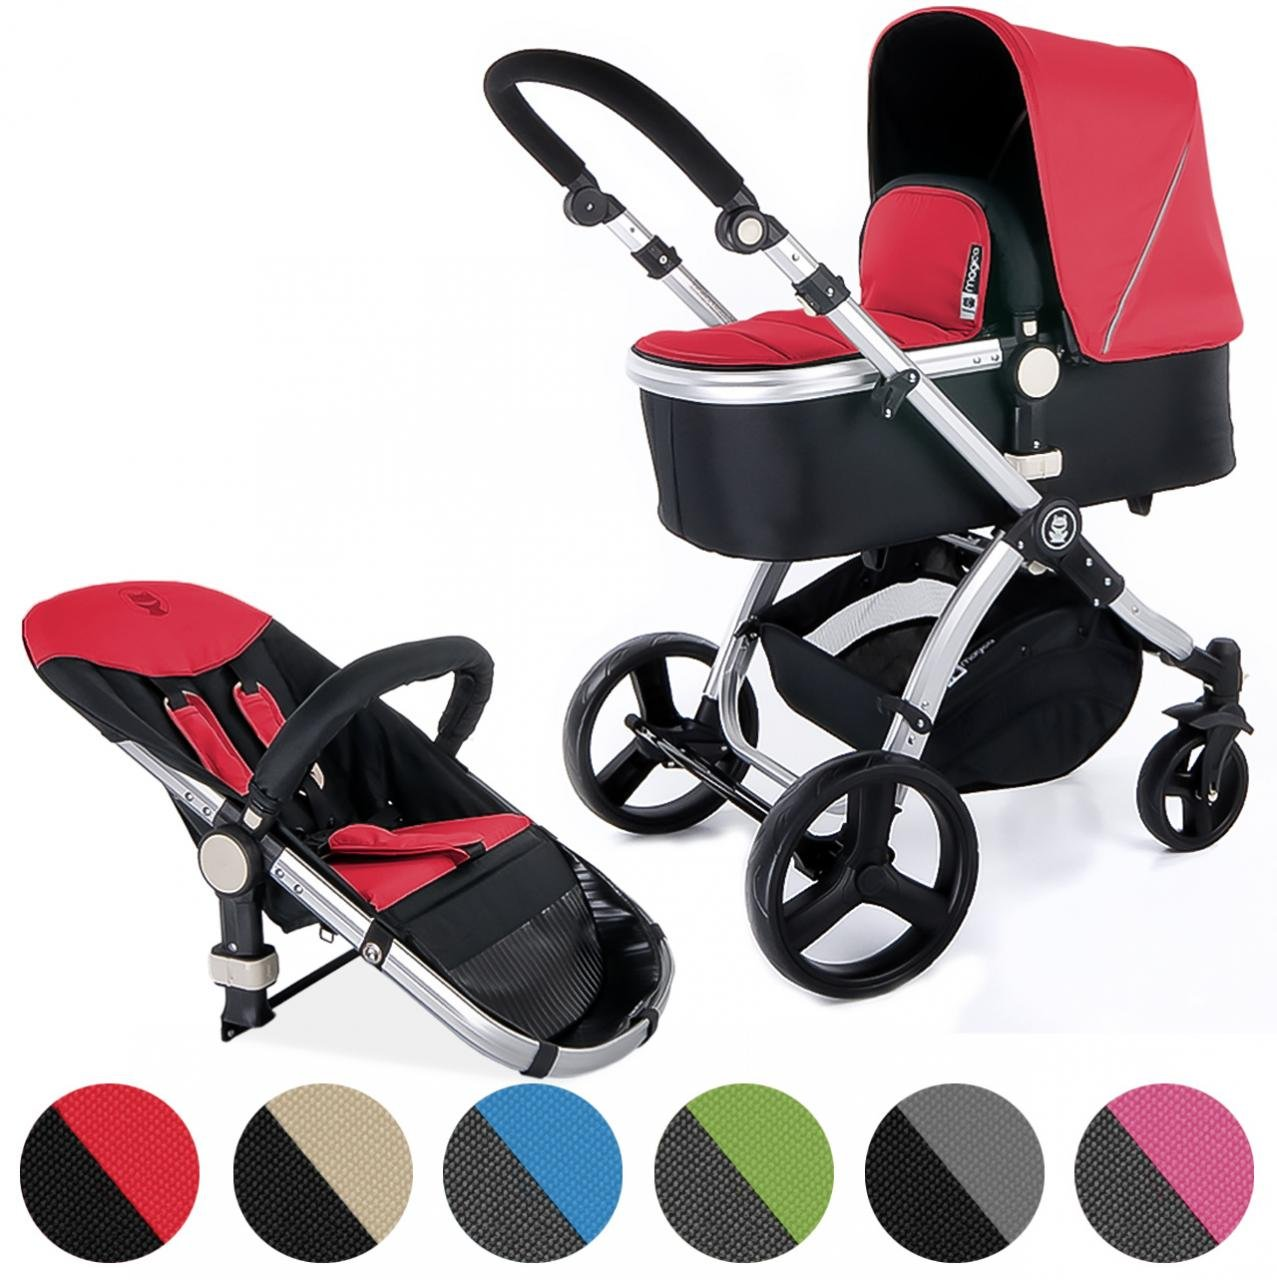 Froggy pushchair pram MAGICA baby stroller buggy 2in1 travel system with carrycot and child seat unit Anthracite